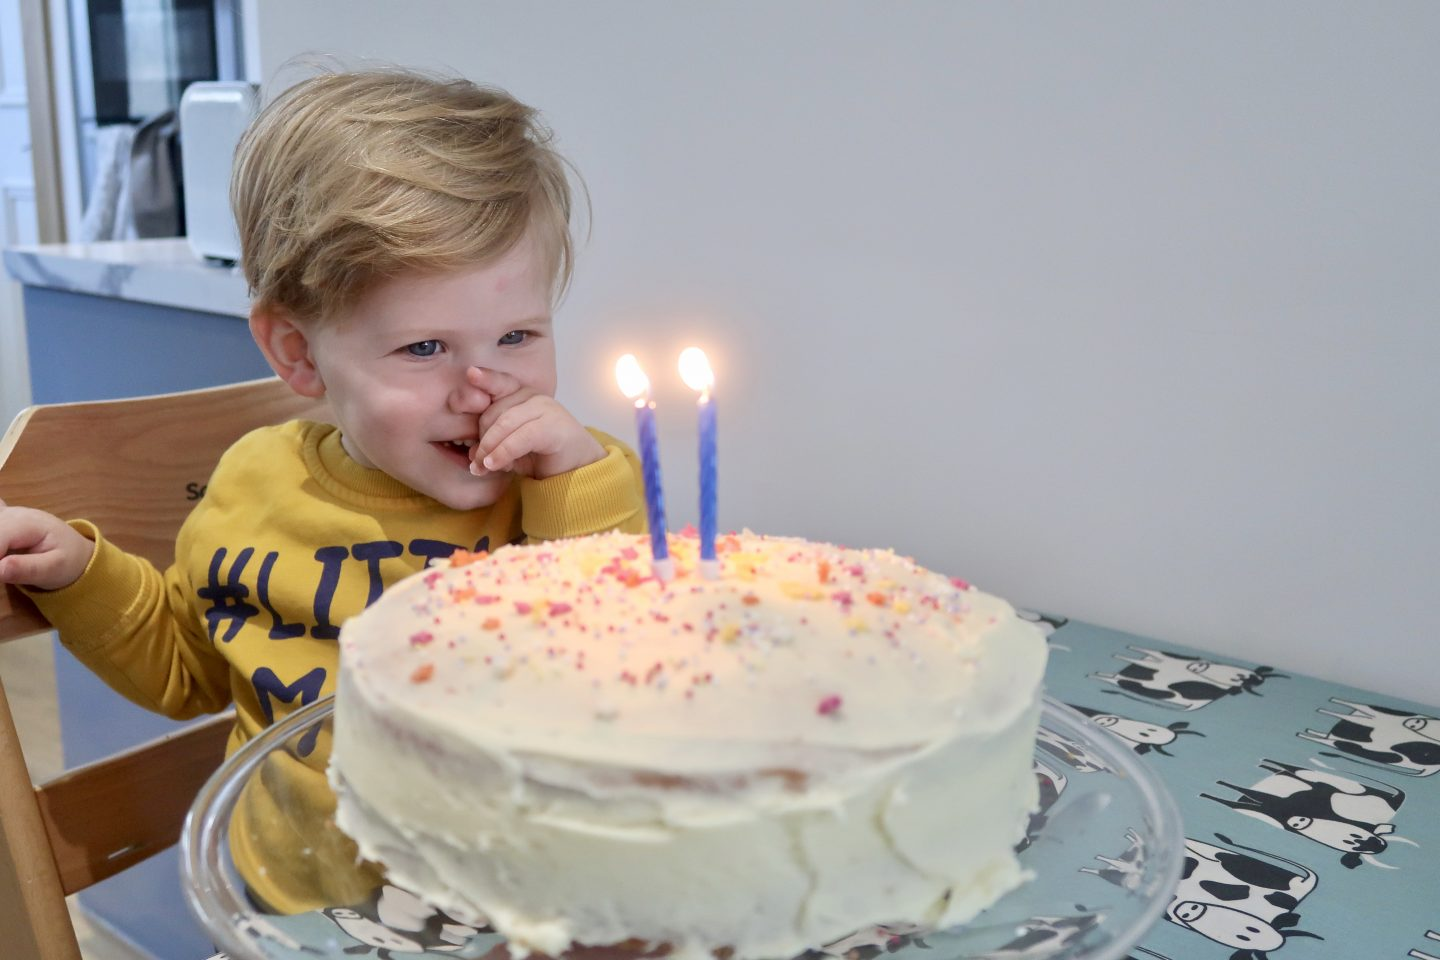 A boy smiling at a white birthday cake with sprinkles on and 2 candles